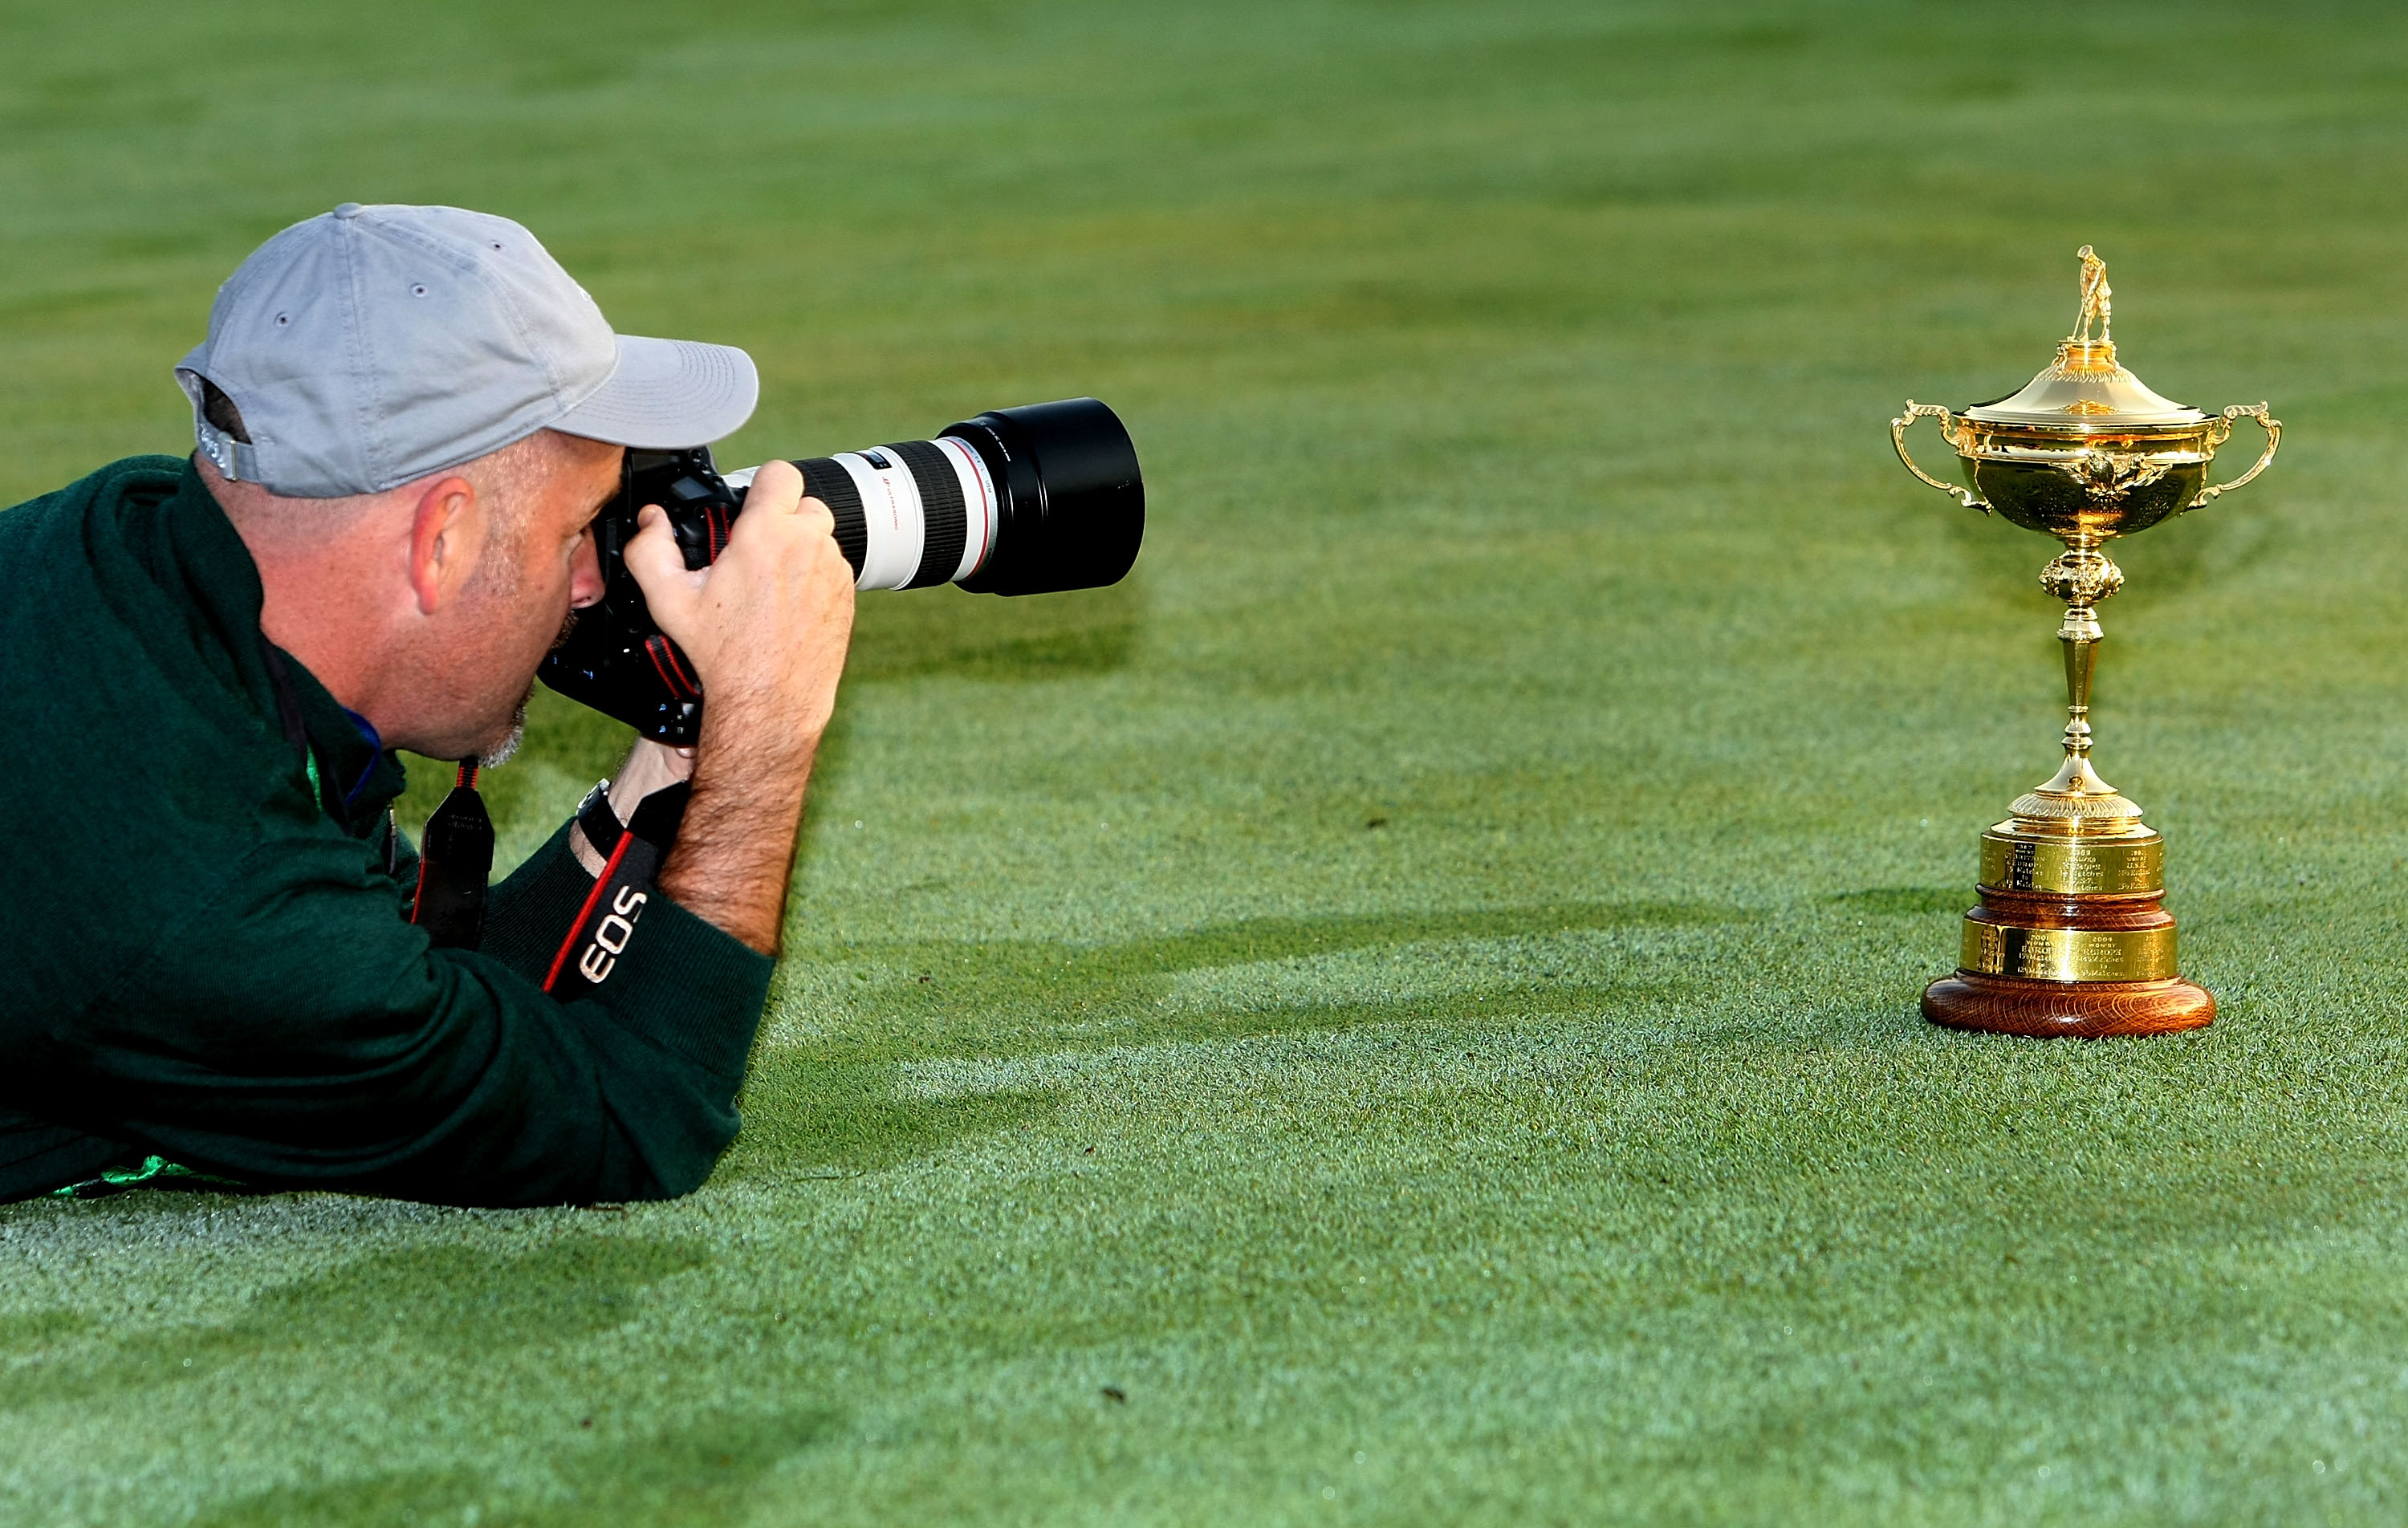 LOUISVILLE, KY - SEPTEMBER 16:  A photographer takes a close up picture of the Ryder Cup during the European team photo shoot prior to the start of the 2008 Ryder Cup at Valhalla Golf Club on September 16, 2008 in Louisville, Kentucky.  (Photo by Harry Ho